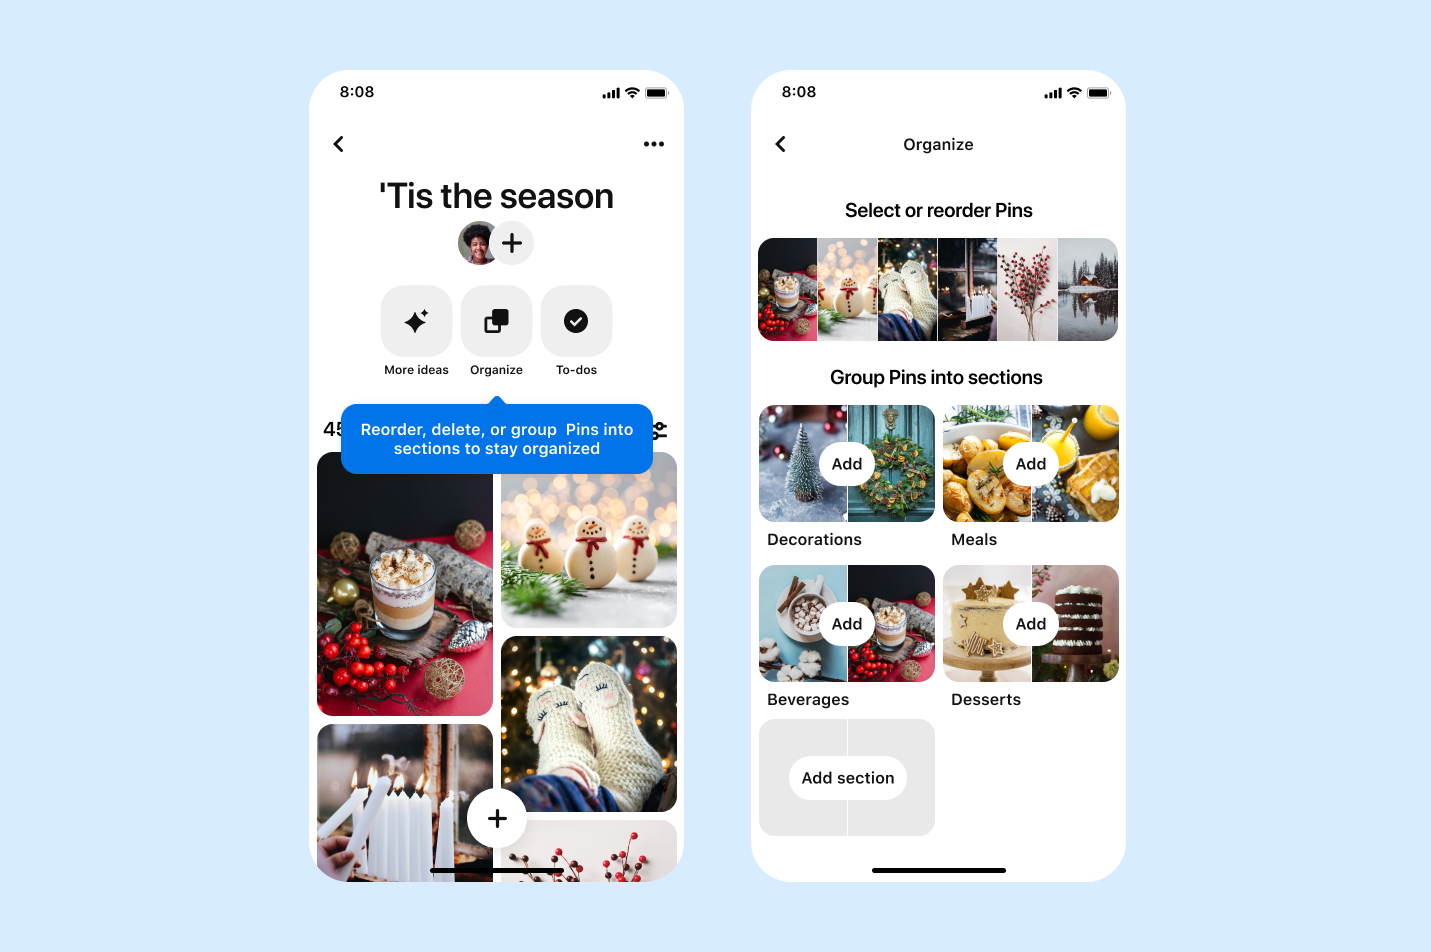 Pinterest launches new board features including notes to self on Pins, board favorites and a board toolbar